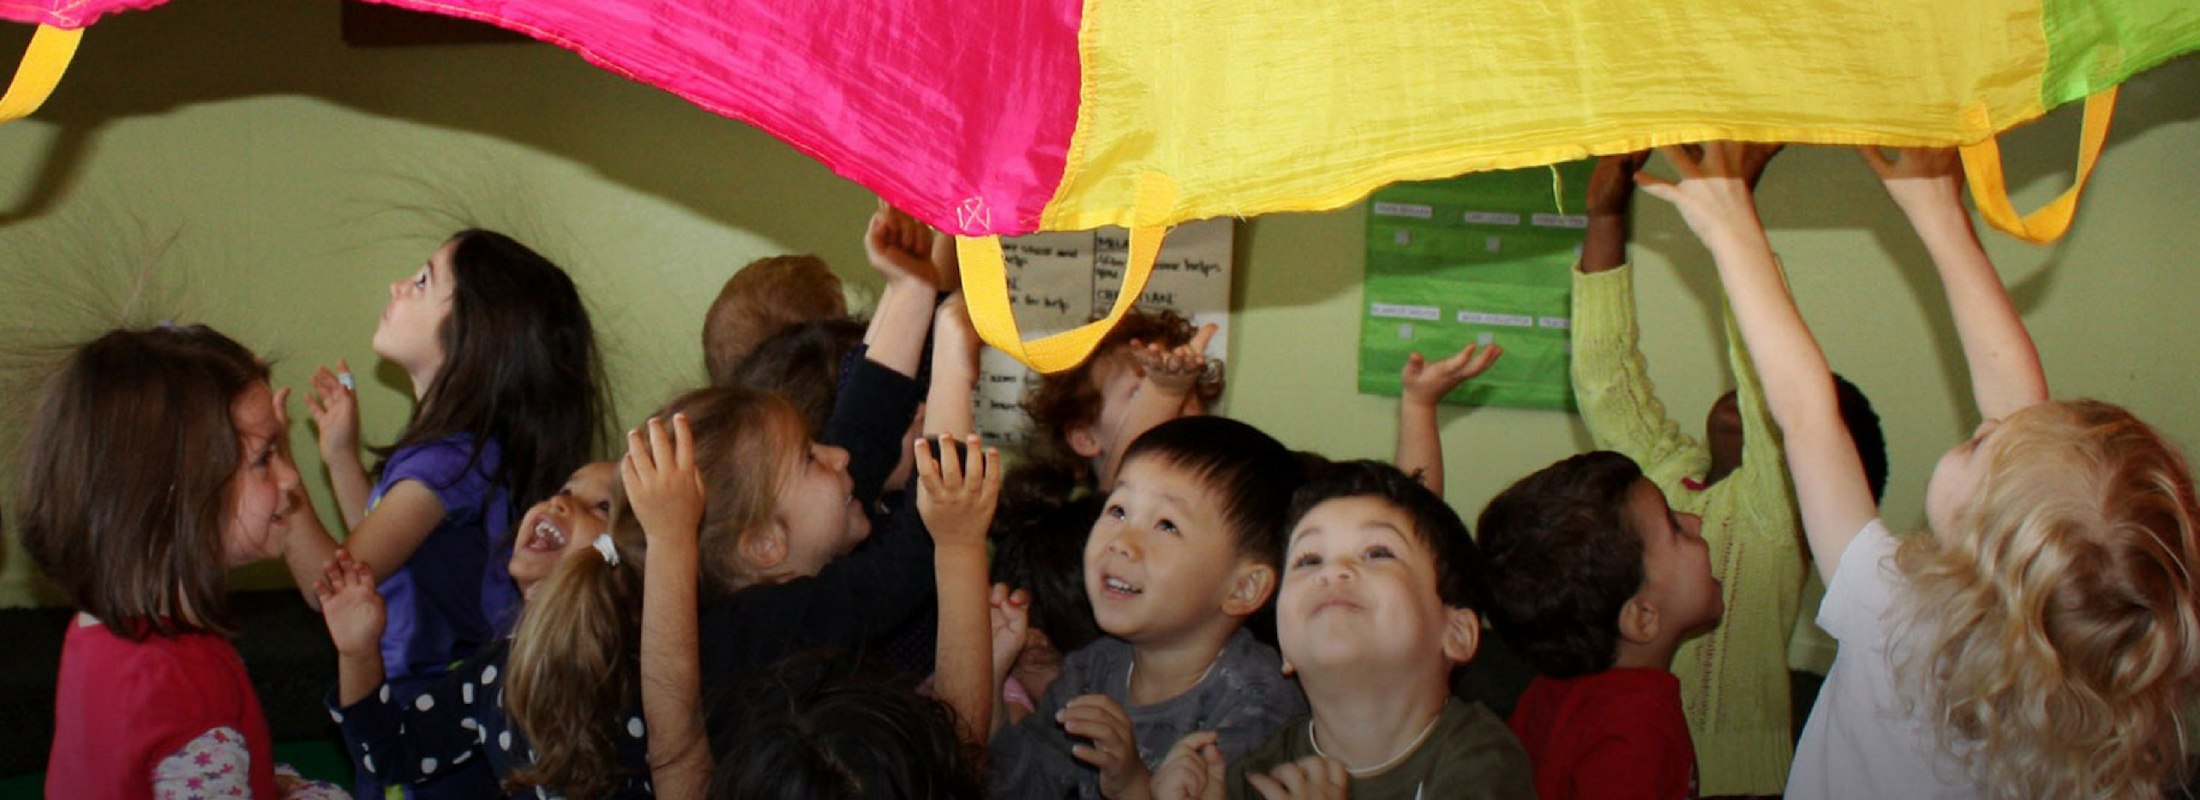 A group of preschool-aged children playing with a parachute